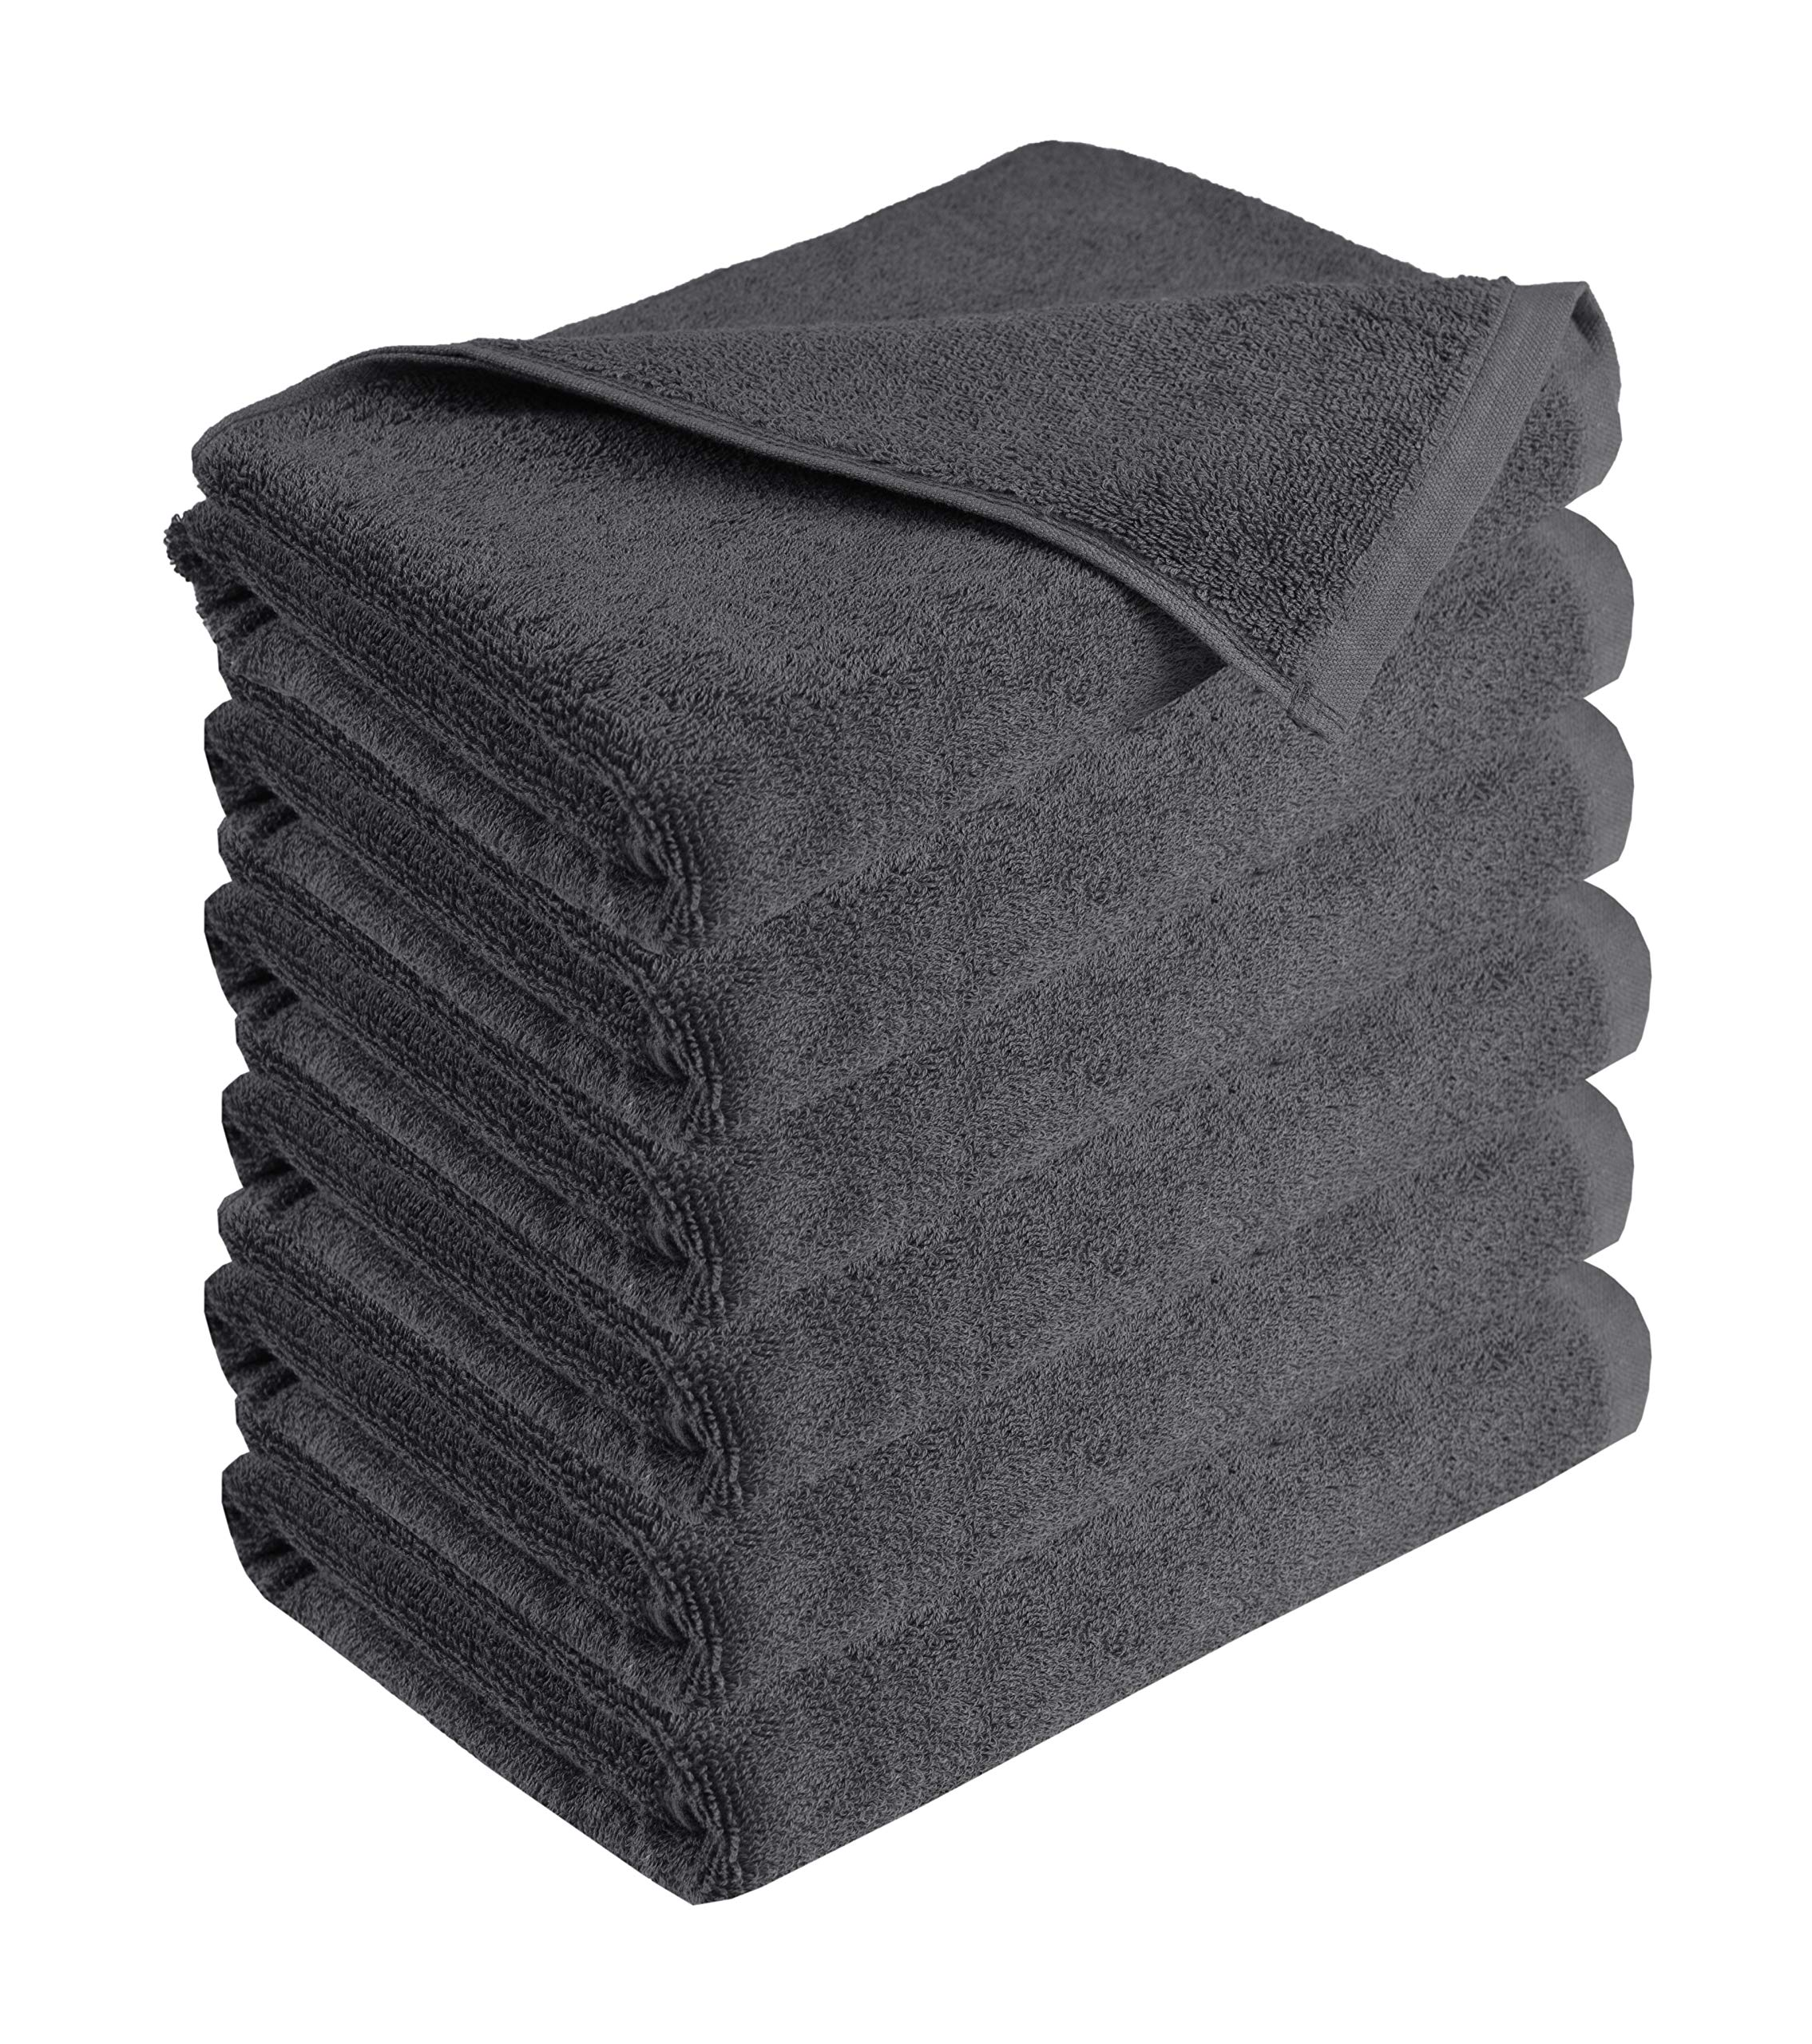 GLAMBURG 100% Cotton 6 Pack Charcoal Bath Towels 22x44 for Hotel Spa Gym Pool Yoga - Lightweight Soft Absorbent Quick Drying - Multipurpose Pool Gym Bath Towel Set